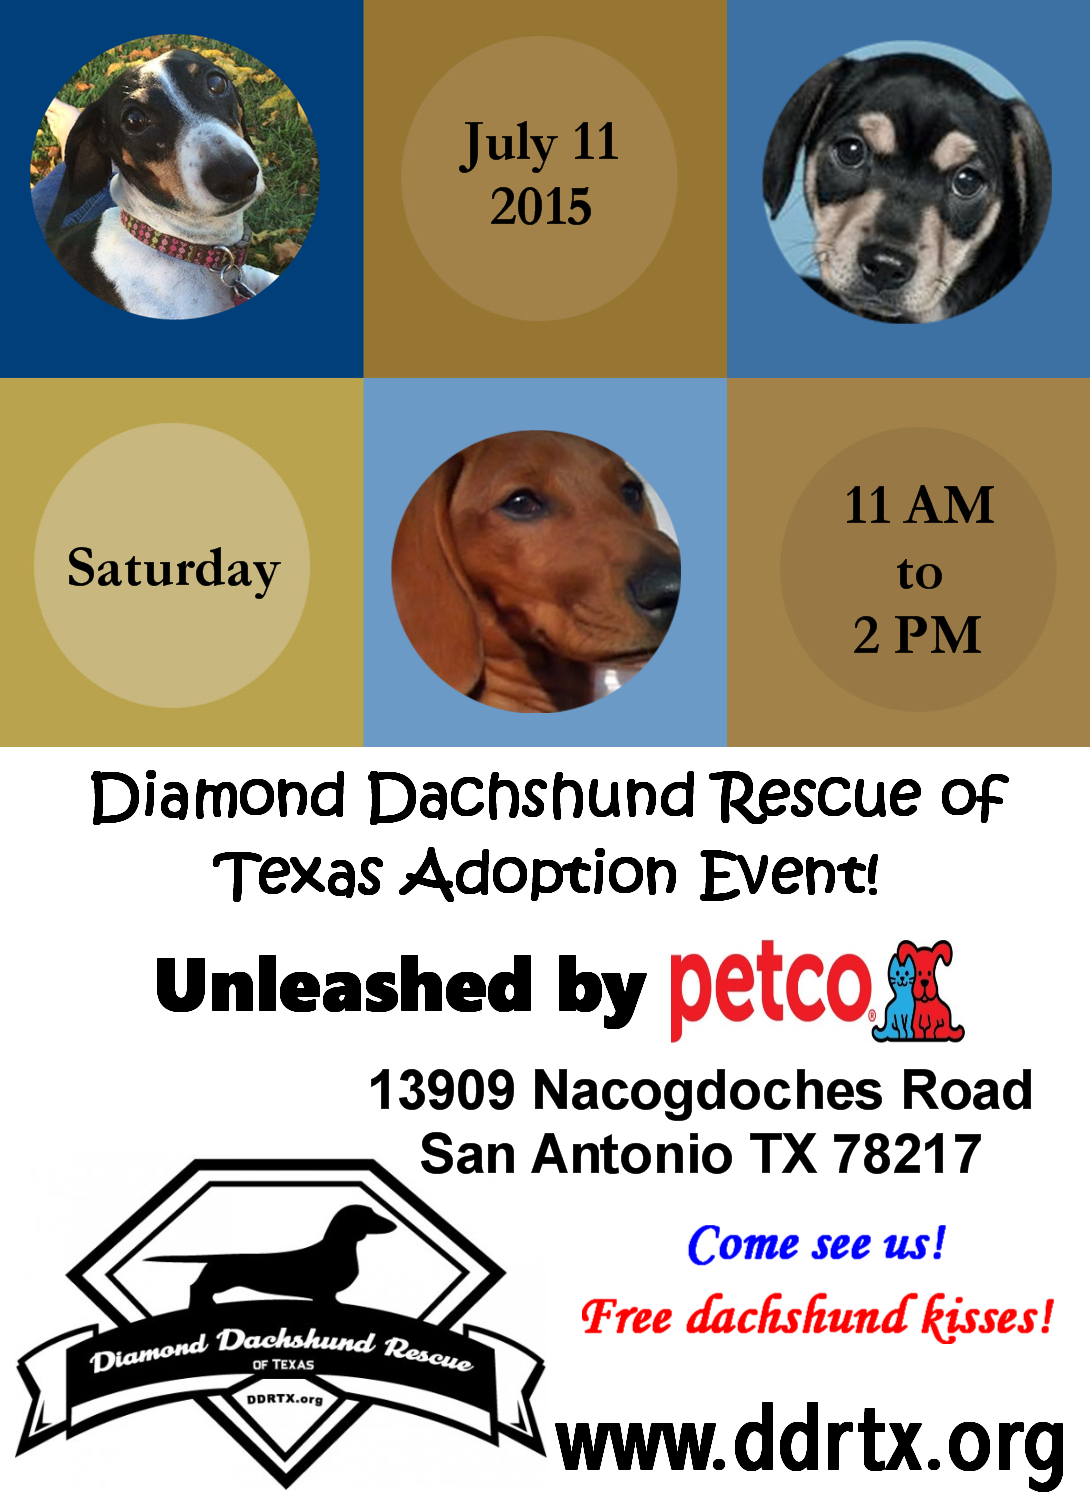 Diamond Dachshund Rescue Of Texas Adoption Event Unleashed By Petco Saturday July 11th 2015 11 00 Am Until 02 00 Pm Petco 13 Petco Dachshund Rescue Adoption